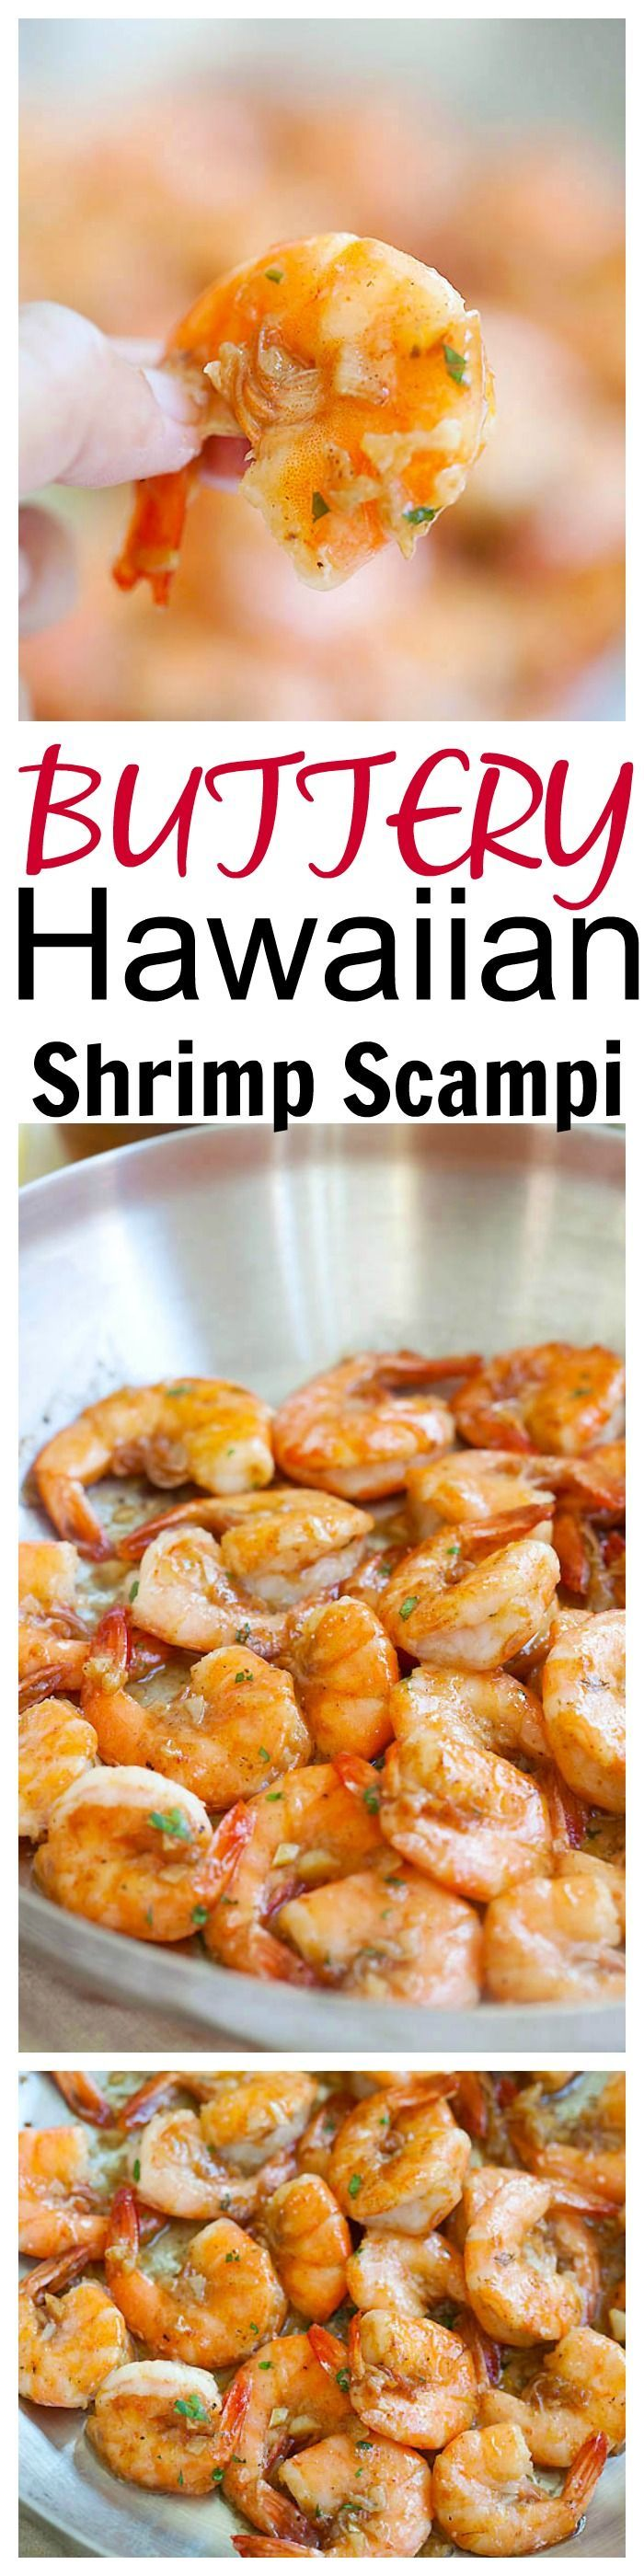 Super buttery and garlicky Hawaiian Shrimp Scampi, totally legit copycat famous Giovanni's shrimp scampi. Bring Hawaii home with my super easy recipe | http://rasamalaysia.com